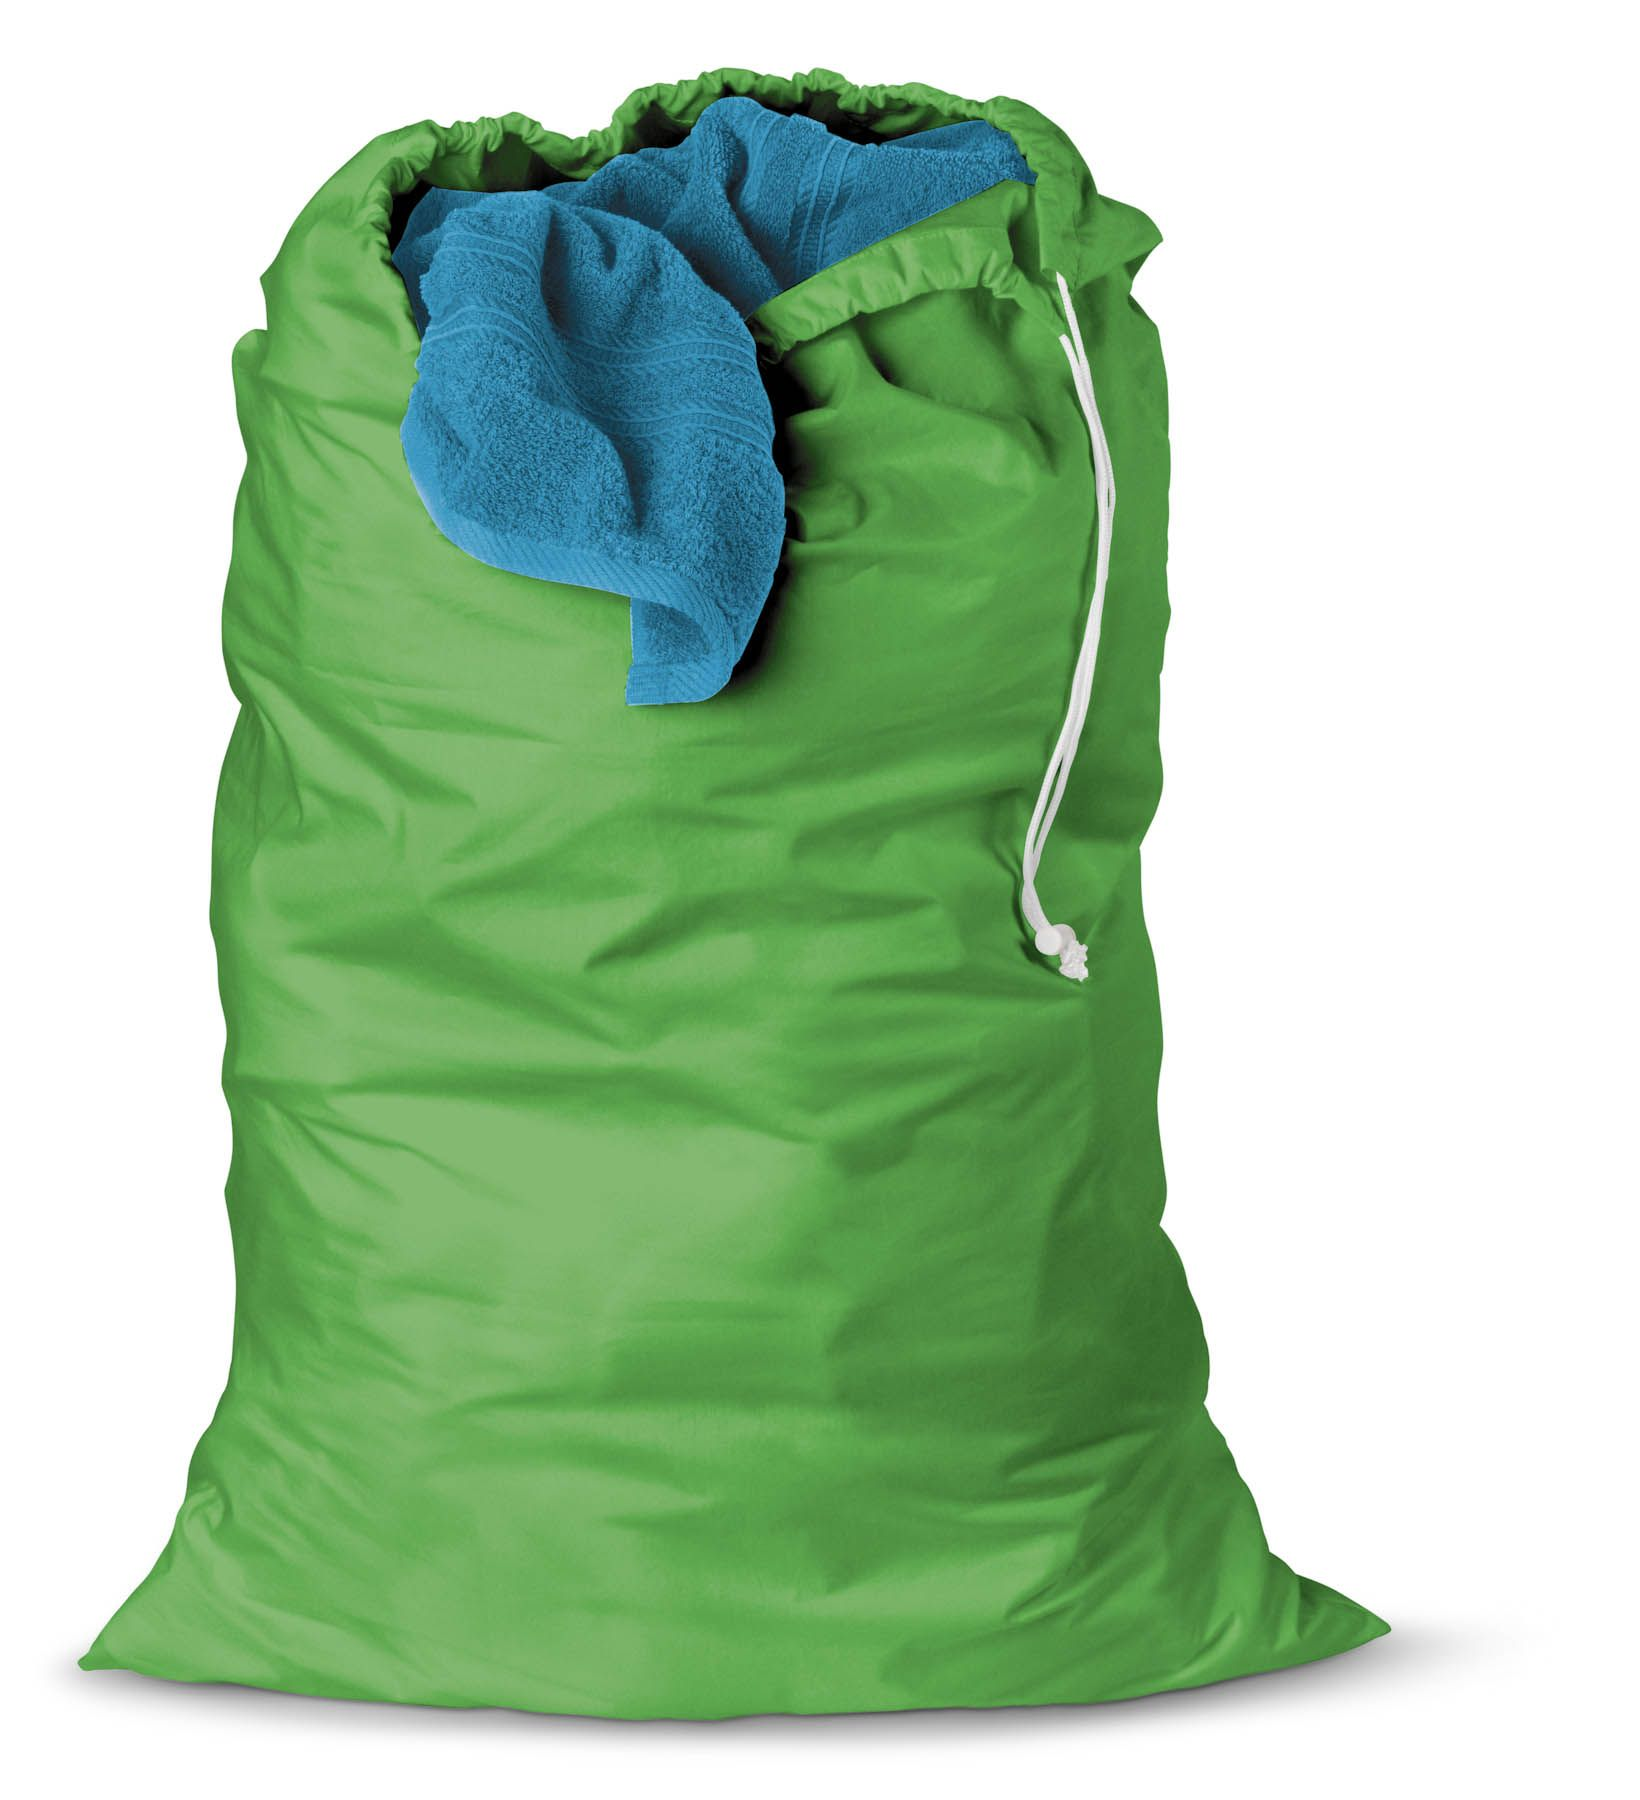 Where Can I Buy Laundry Bags Honey Can Do Set Of 2 Jersey Cotton Laundry Bag Green